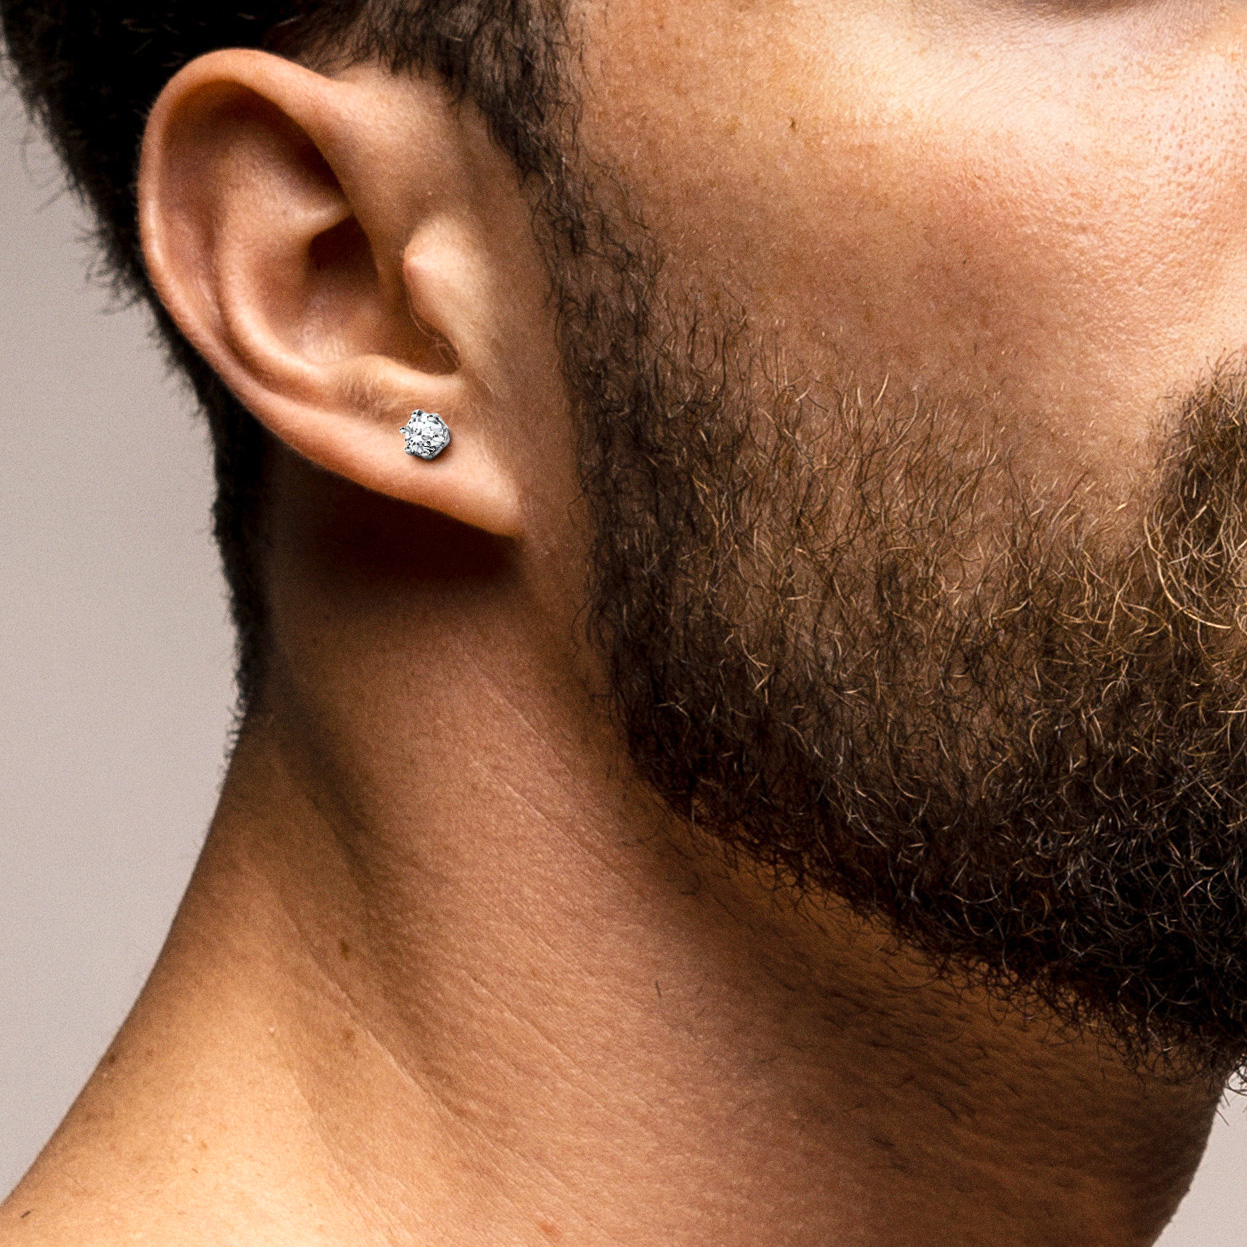 MEN'S EARRING 3 MM SWAROVSKI ZIRCONIA 925